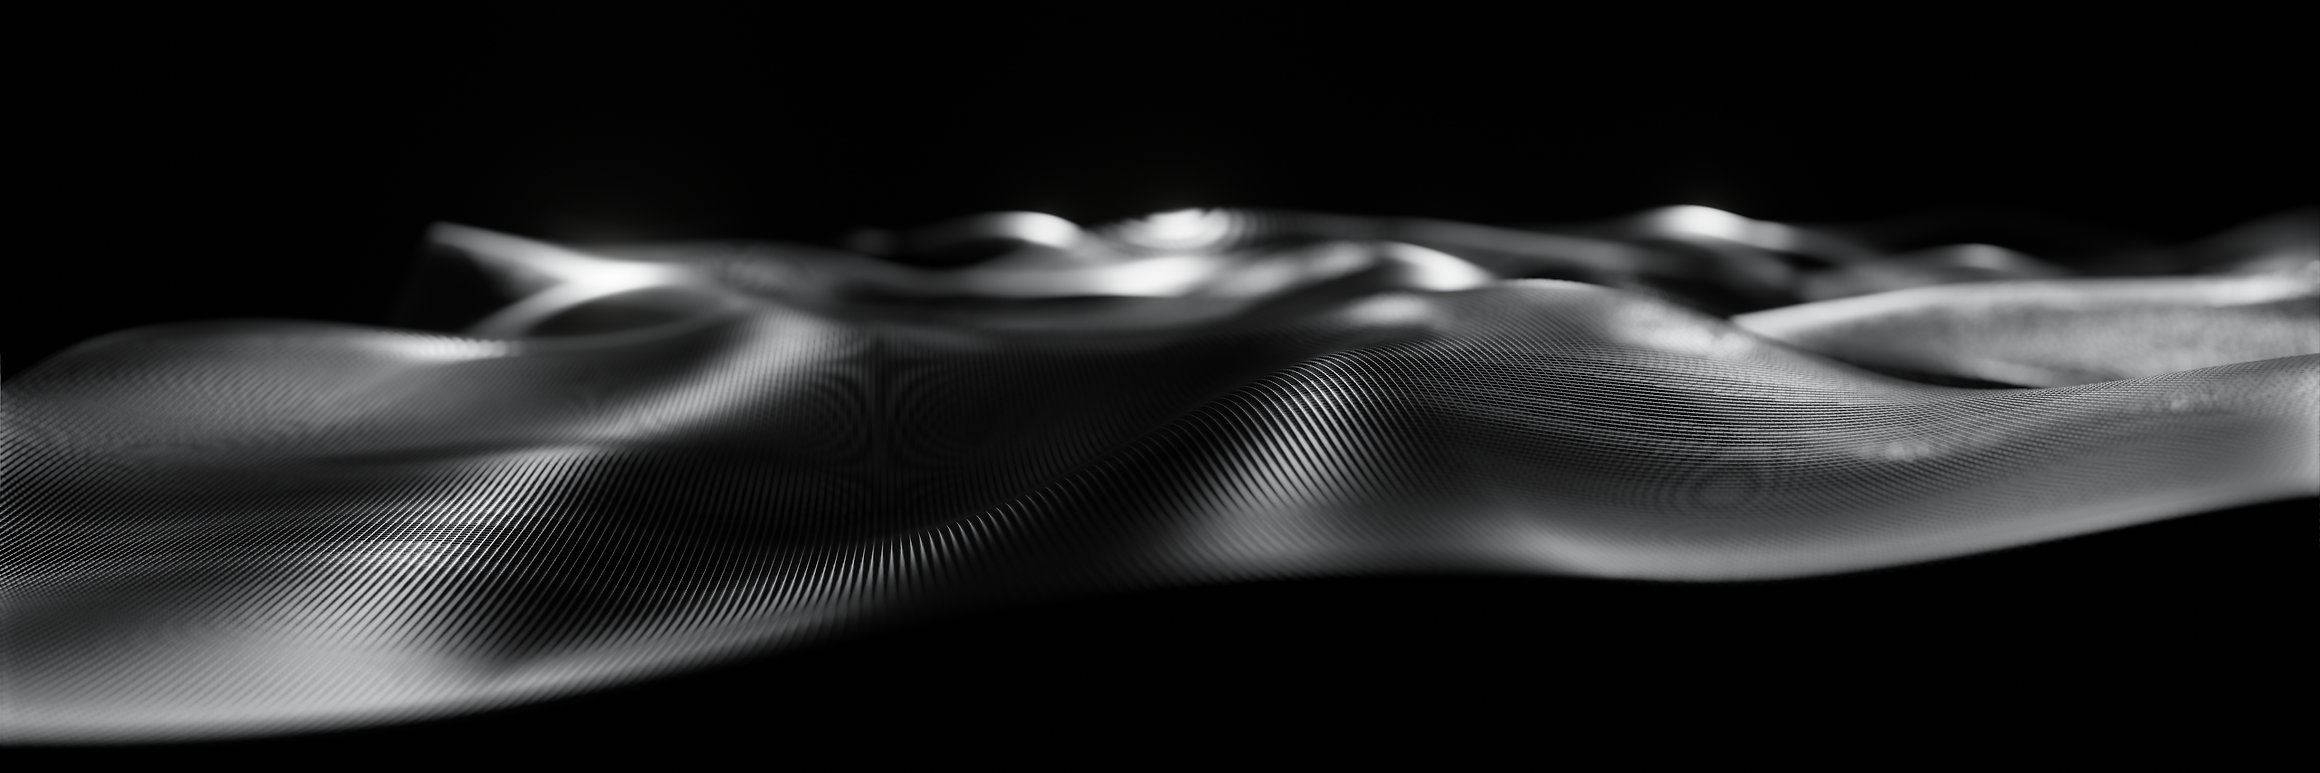 abstract-futuristic-digital-wave-of-part